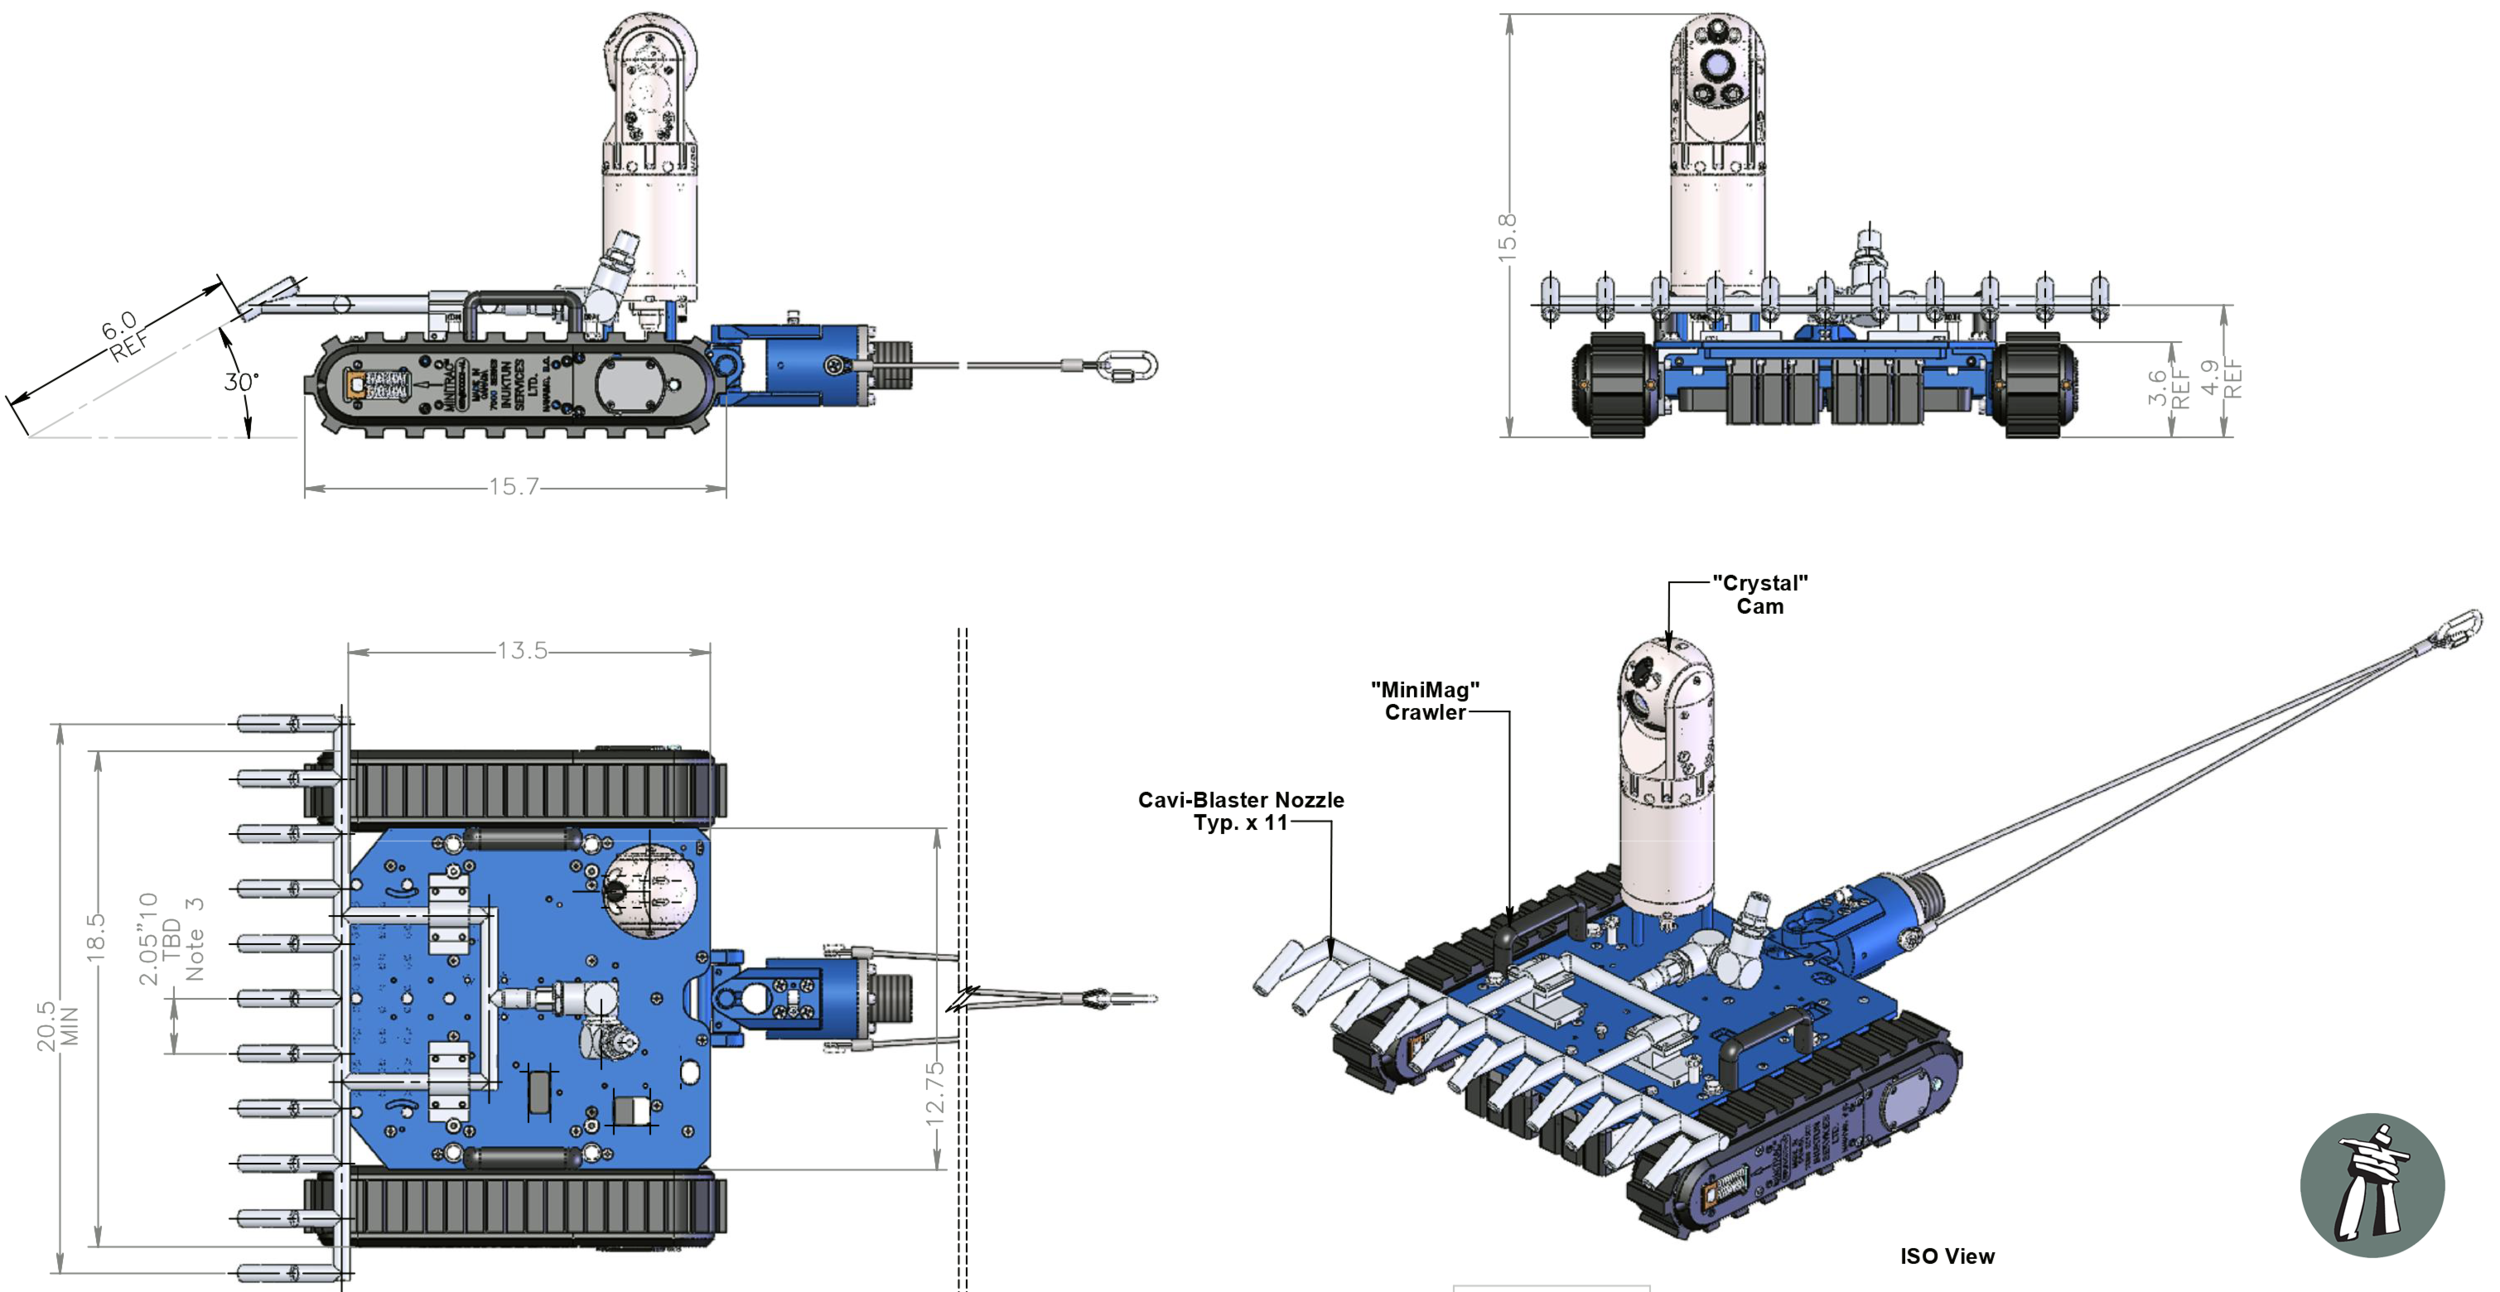 CONCEPT Inuktun Ship Hull Cleaning Robotic Crawler Click image to expand